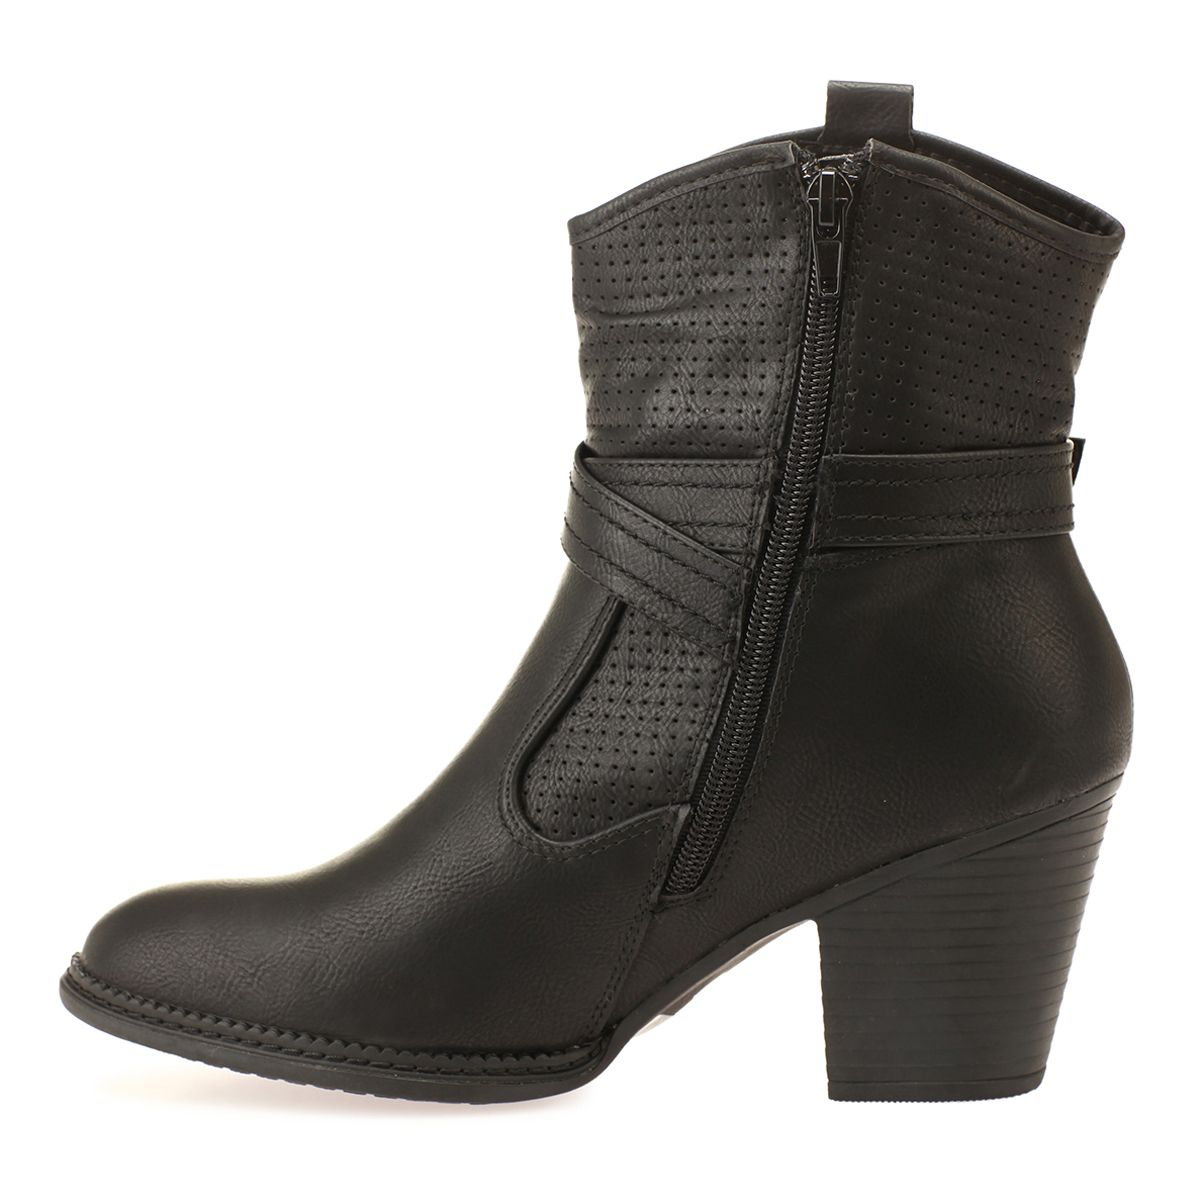 Bottines noires en simili cuir perforé